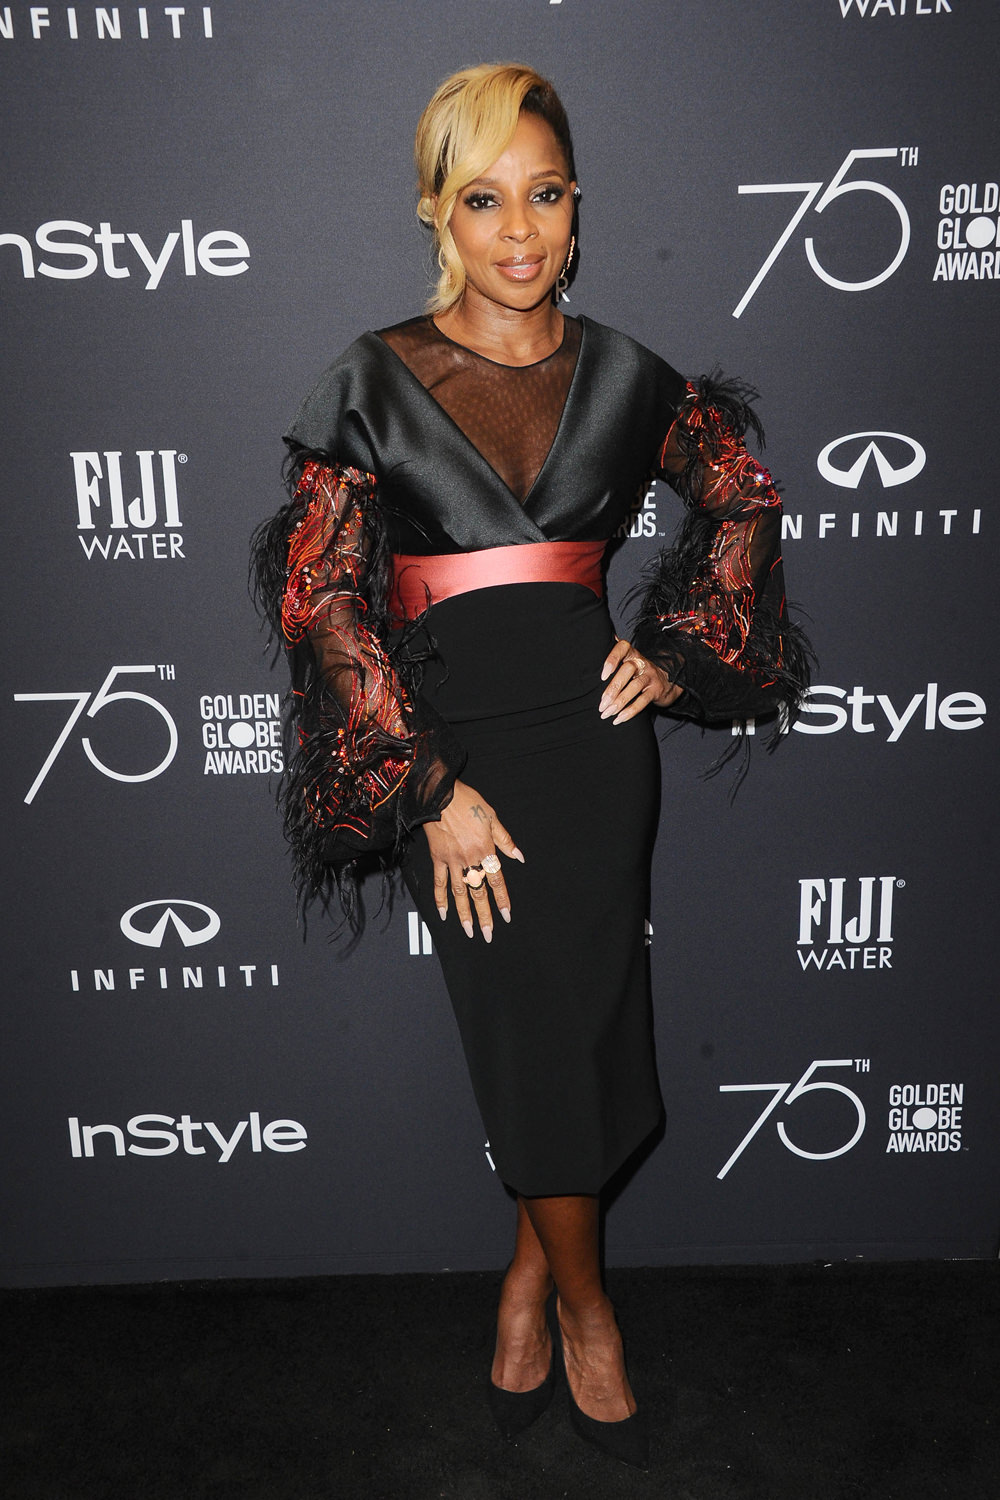 Mary-J-Blige-HFPA-InStyle-Golden-Globe-Awards-Celebration-Red-Carpet-Fashion-Tom-Lorenzo-Site-1.jpg